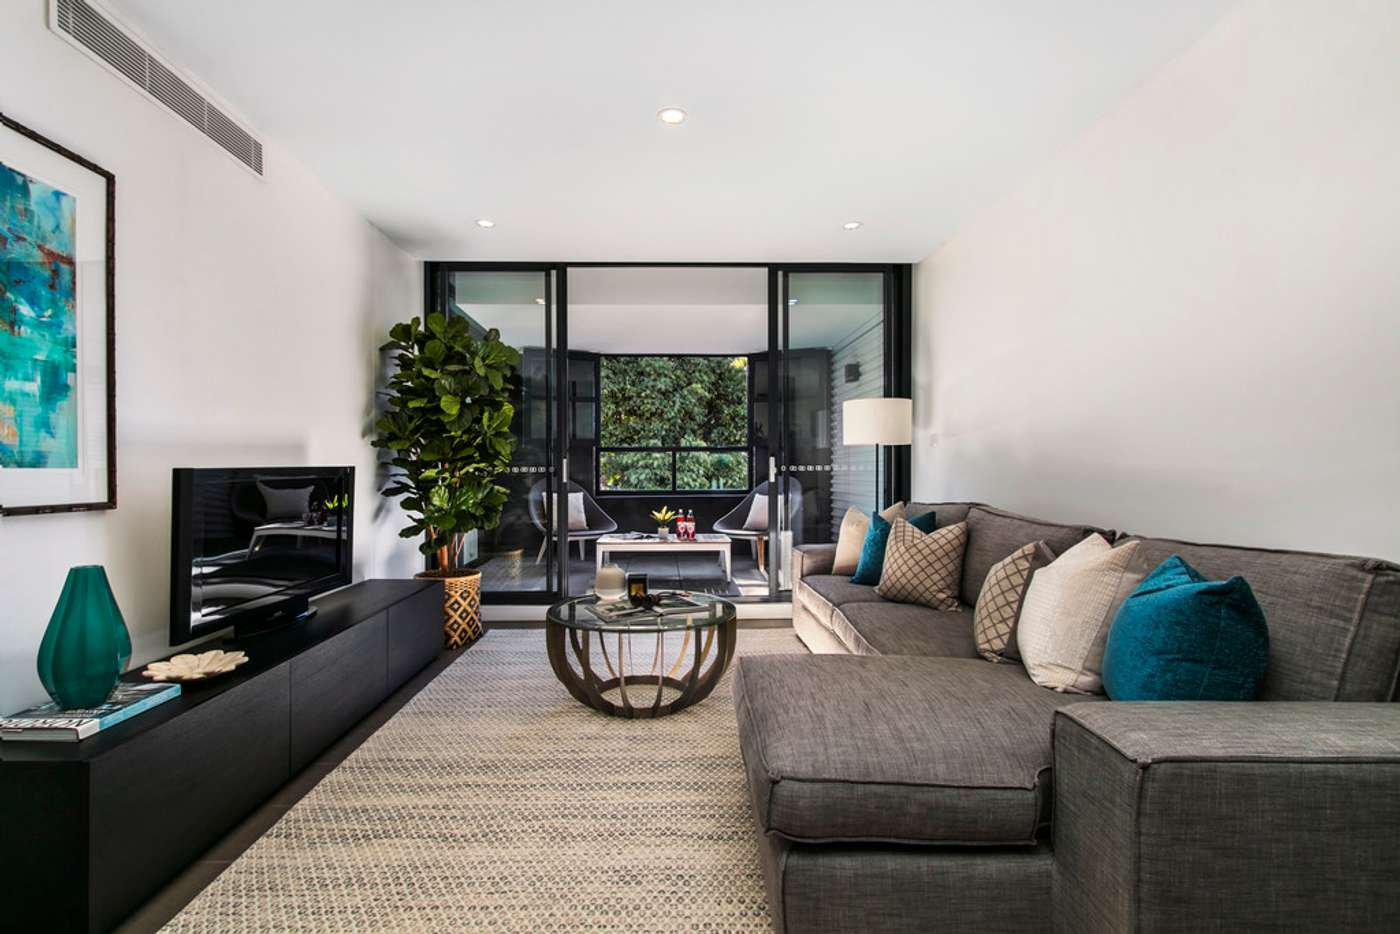 Main view of Homely apartment listing, 10/1-19 Gibbens Street, Camperdown NSW 2050